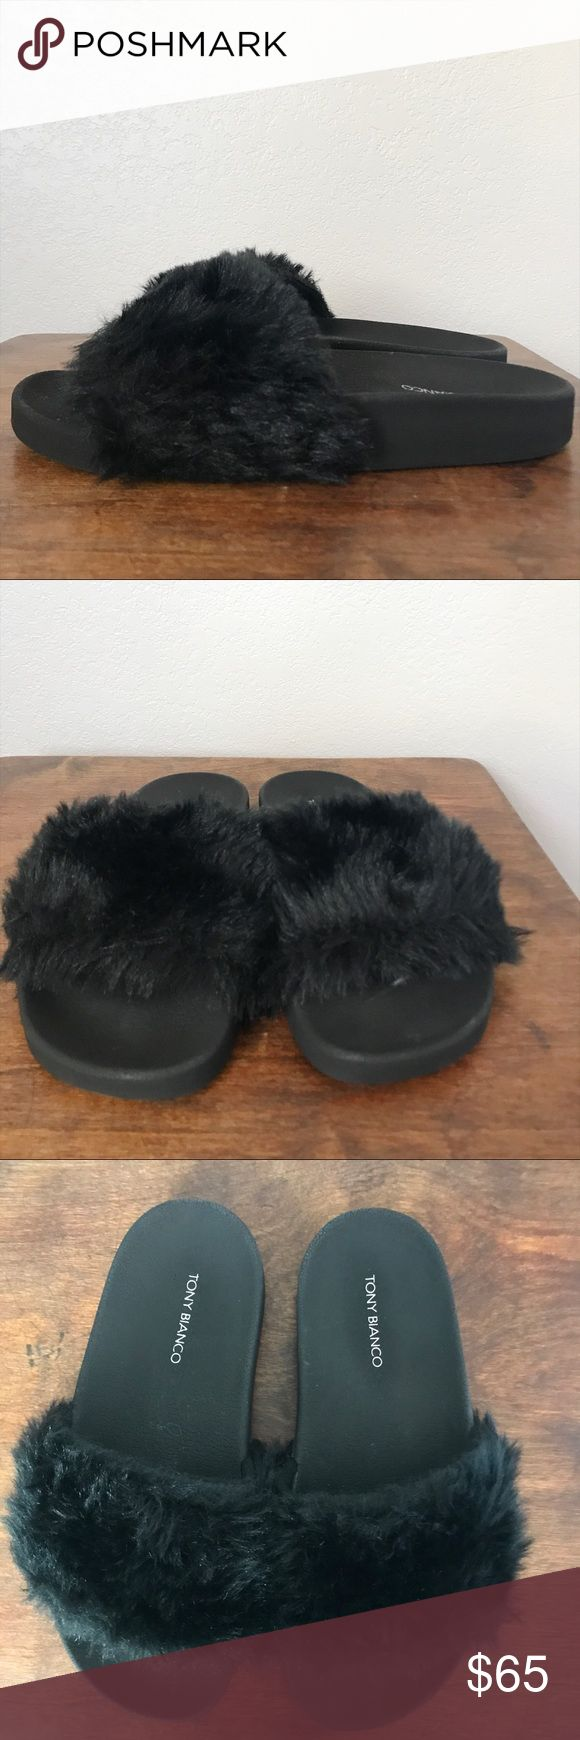 Tony Bianco Vixen Slide Black Sandal in Size 7 Tony Bianco Vixen Slide Black Sandal in Size 7 A fuzzy slide is edgy and takes street style to the next level. The sandal has a faux-fur finish and a comfortable molded sole for wear-everywhere. NWOT  Please check out the other items that I have for sale! Tony Bianco Shoes Sandals